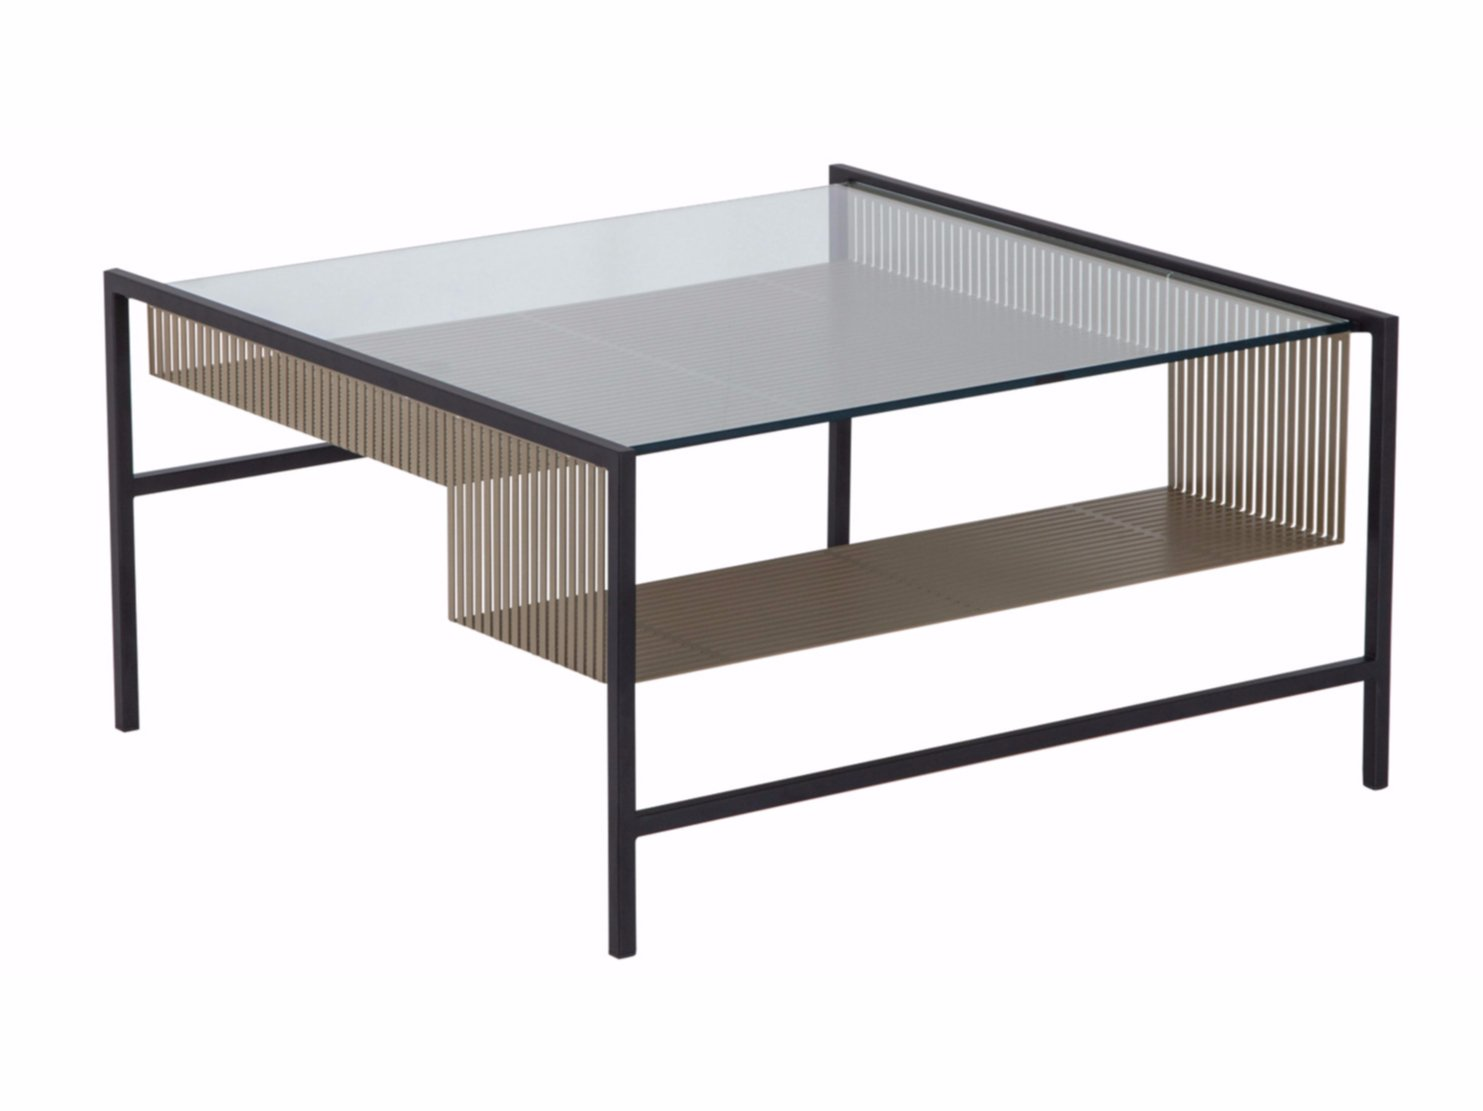 table roche bobois interesting table basse en verre la roche bobois with table roche bobois. Black Bedroom Furniture Sets. Home Design Ideas